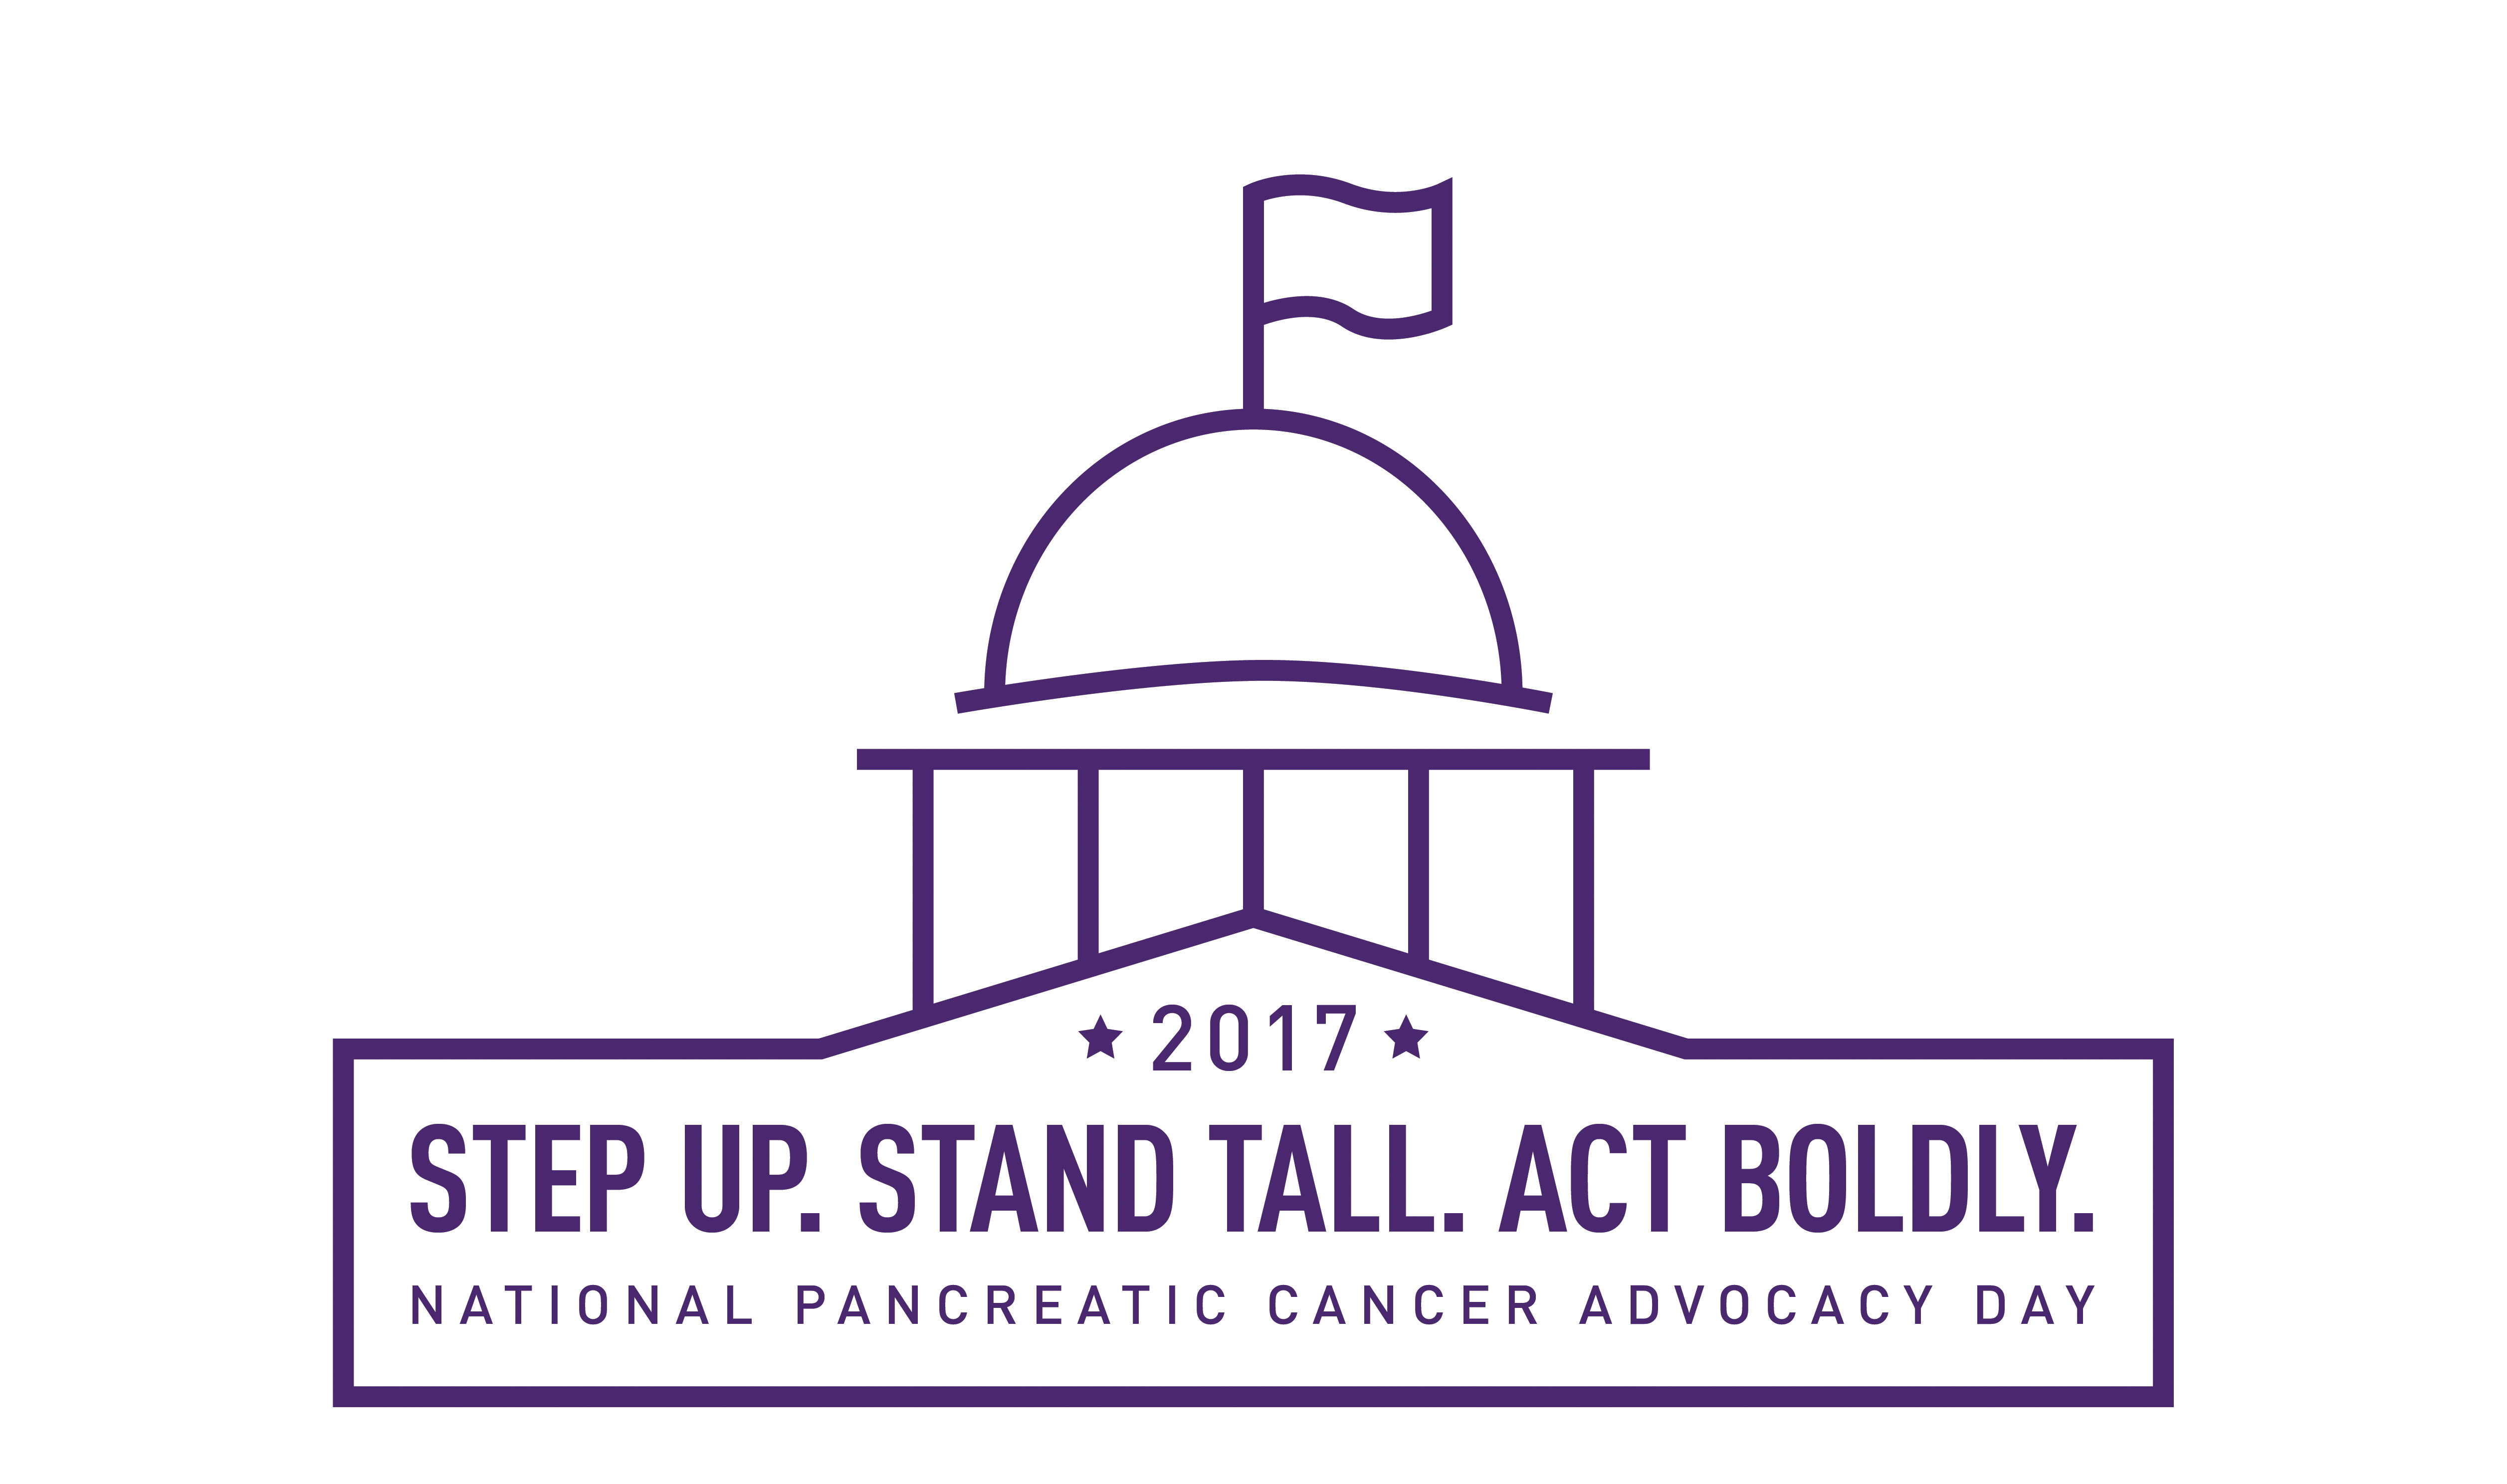 National Pancreatic Cancer Advocacy Day is the largest single gathering of people committed to fighting pancreatic cancer in the country. Step Up. Stand Tall. Act Boldly. June 19-20 in Washington, D.C. www.pancan.org/advocacyday (Graphic: Business Wire)